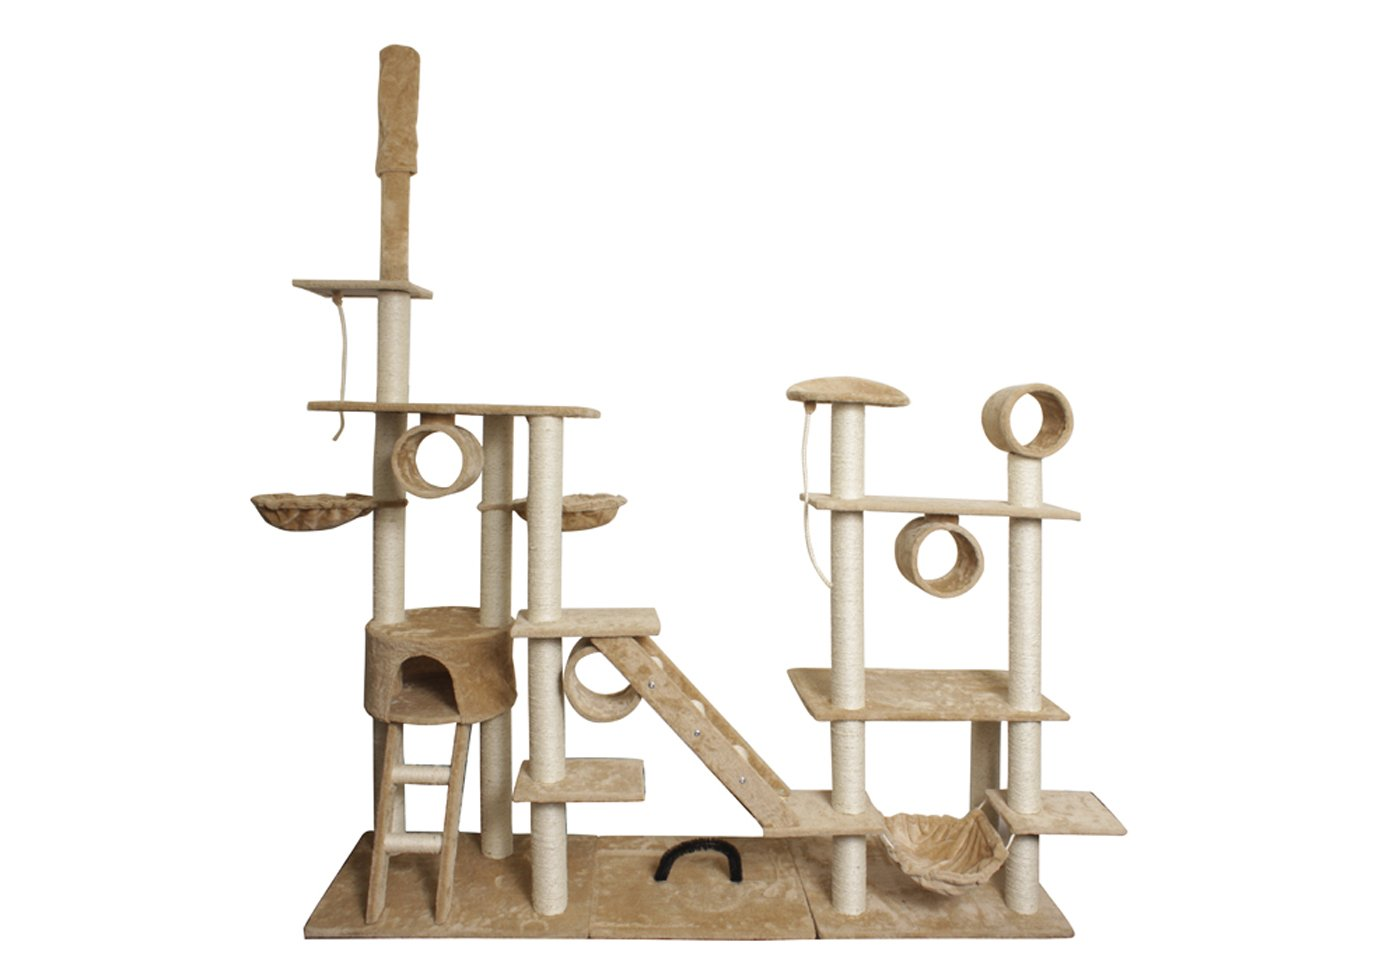 """Paws & Pals 76""""x20""""x96"""" Cat Tree House w/Scartching Post Towers, Hammock Bed, Pet Toy Balls And Ropes, Multi Level Playground, 10 Level Condo w/Tunnels And Stairs - Tan And White"""